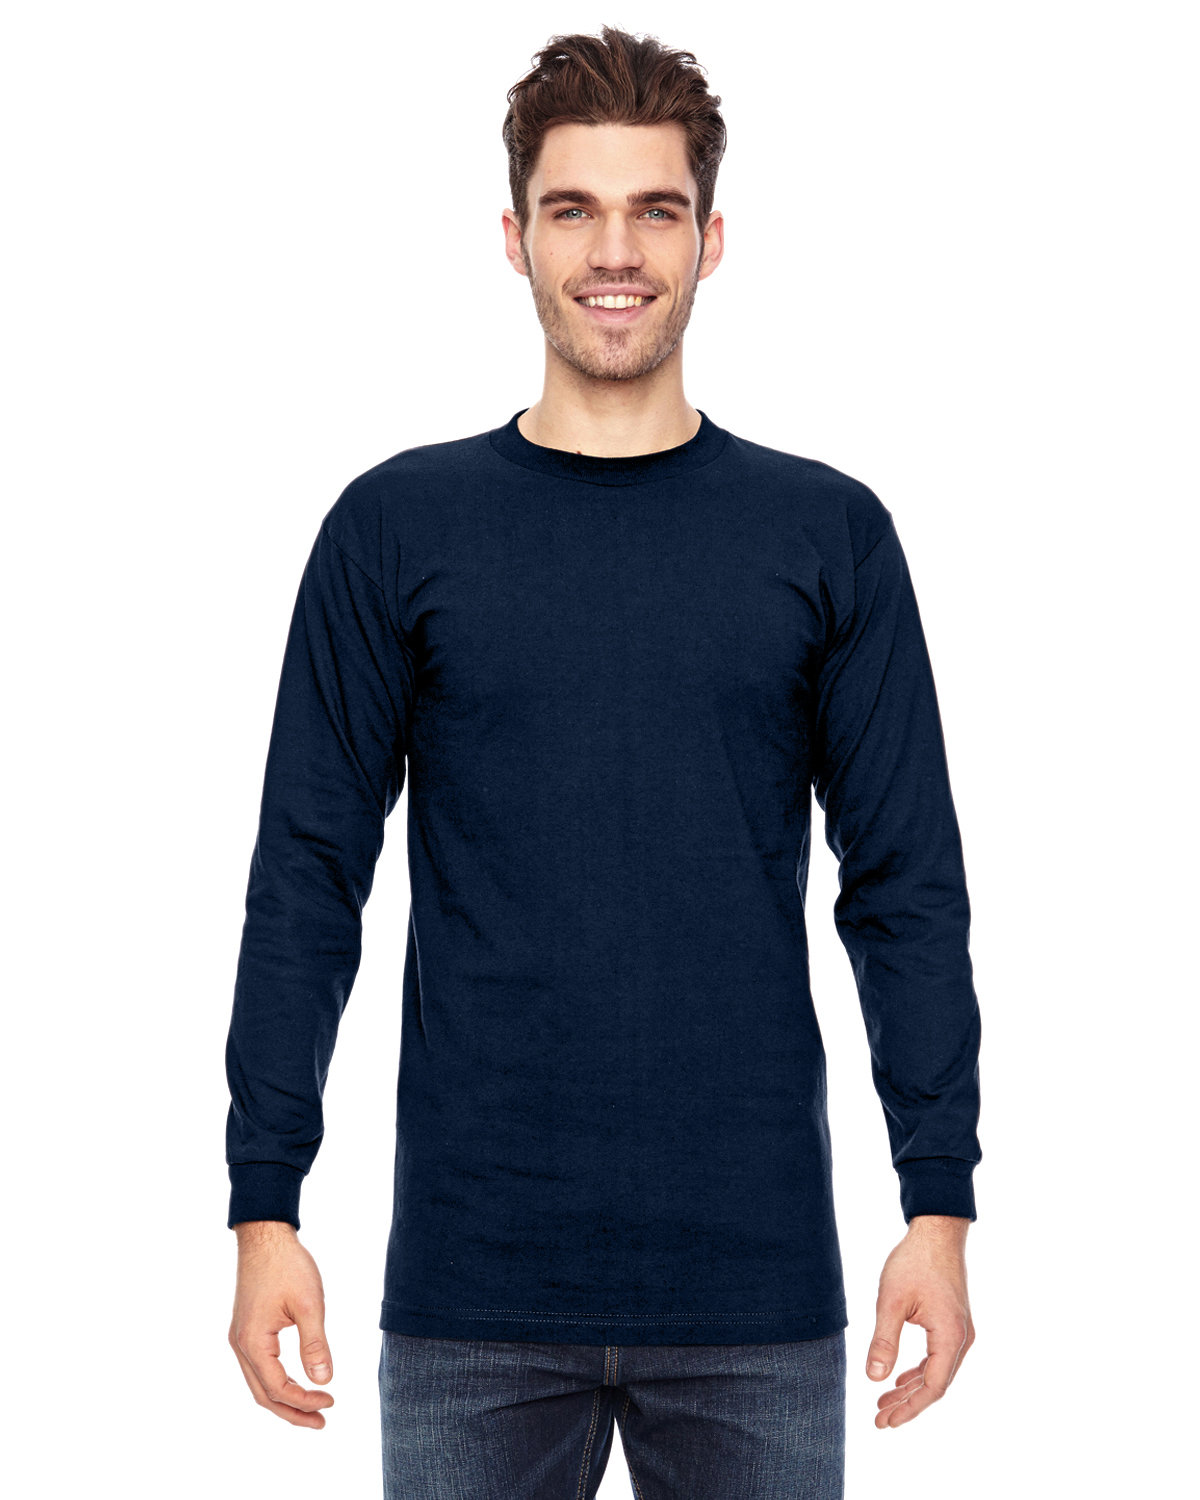 Bayside Adult 6.1 oz., 100% Cotton Long Sleeve T-Shirt NAVY